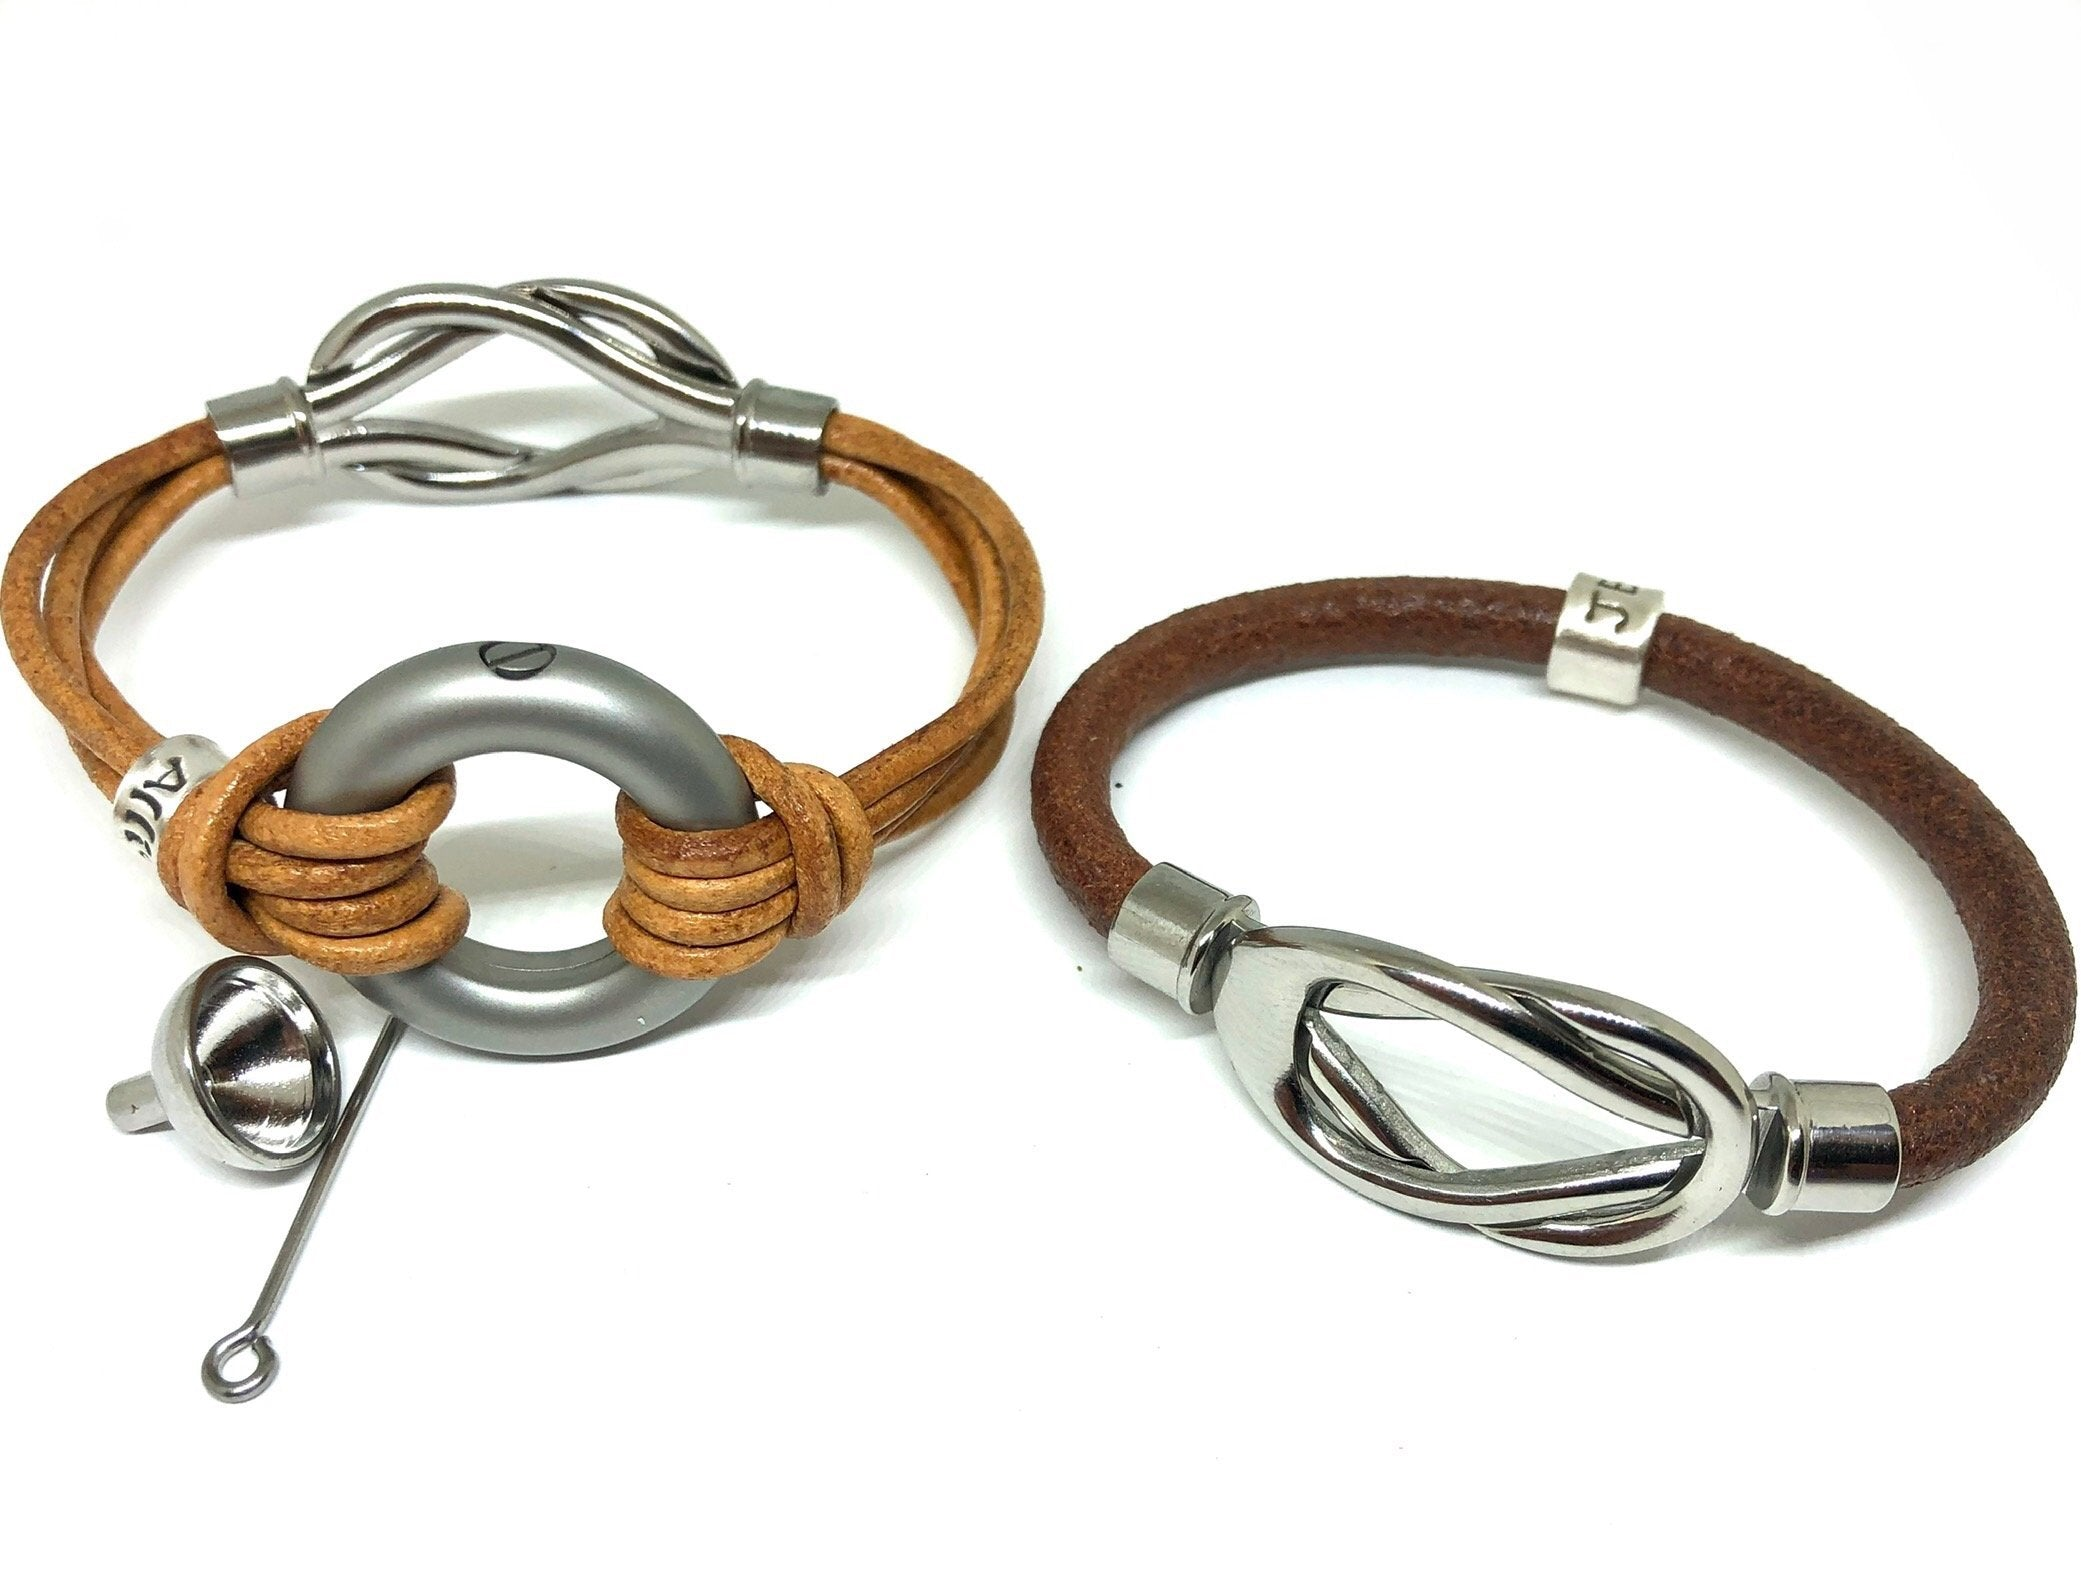 Take a look at our new clasps